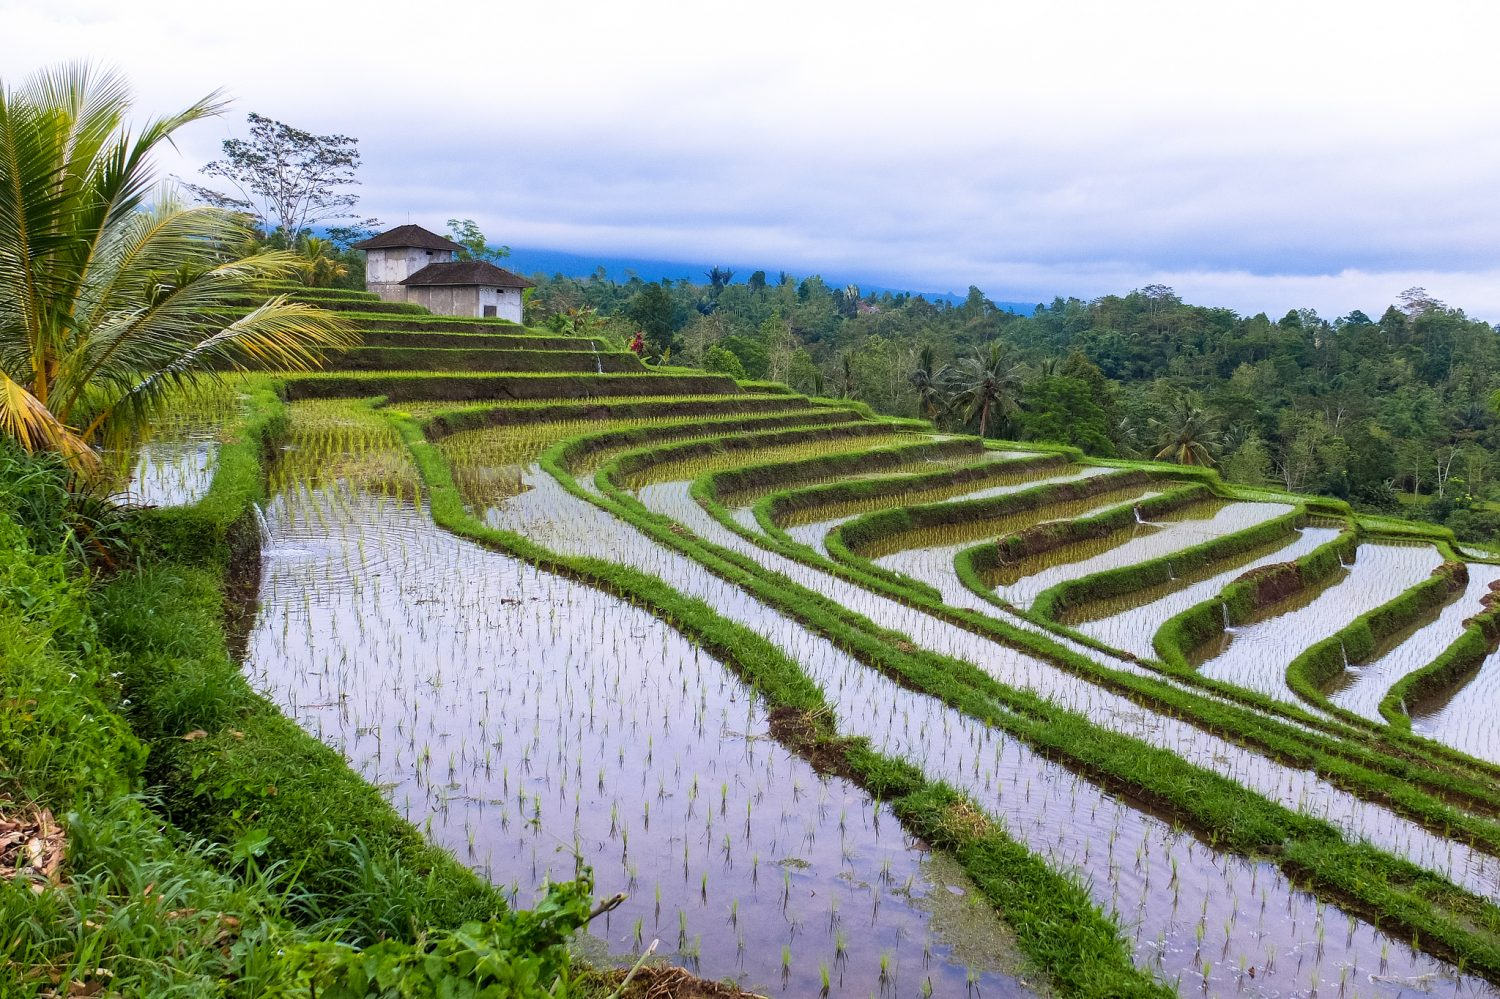 Bali rice terraces - Visa on Arrival in Indonesia